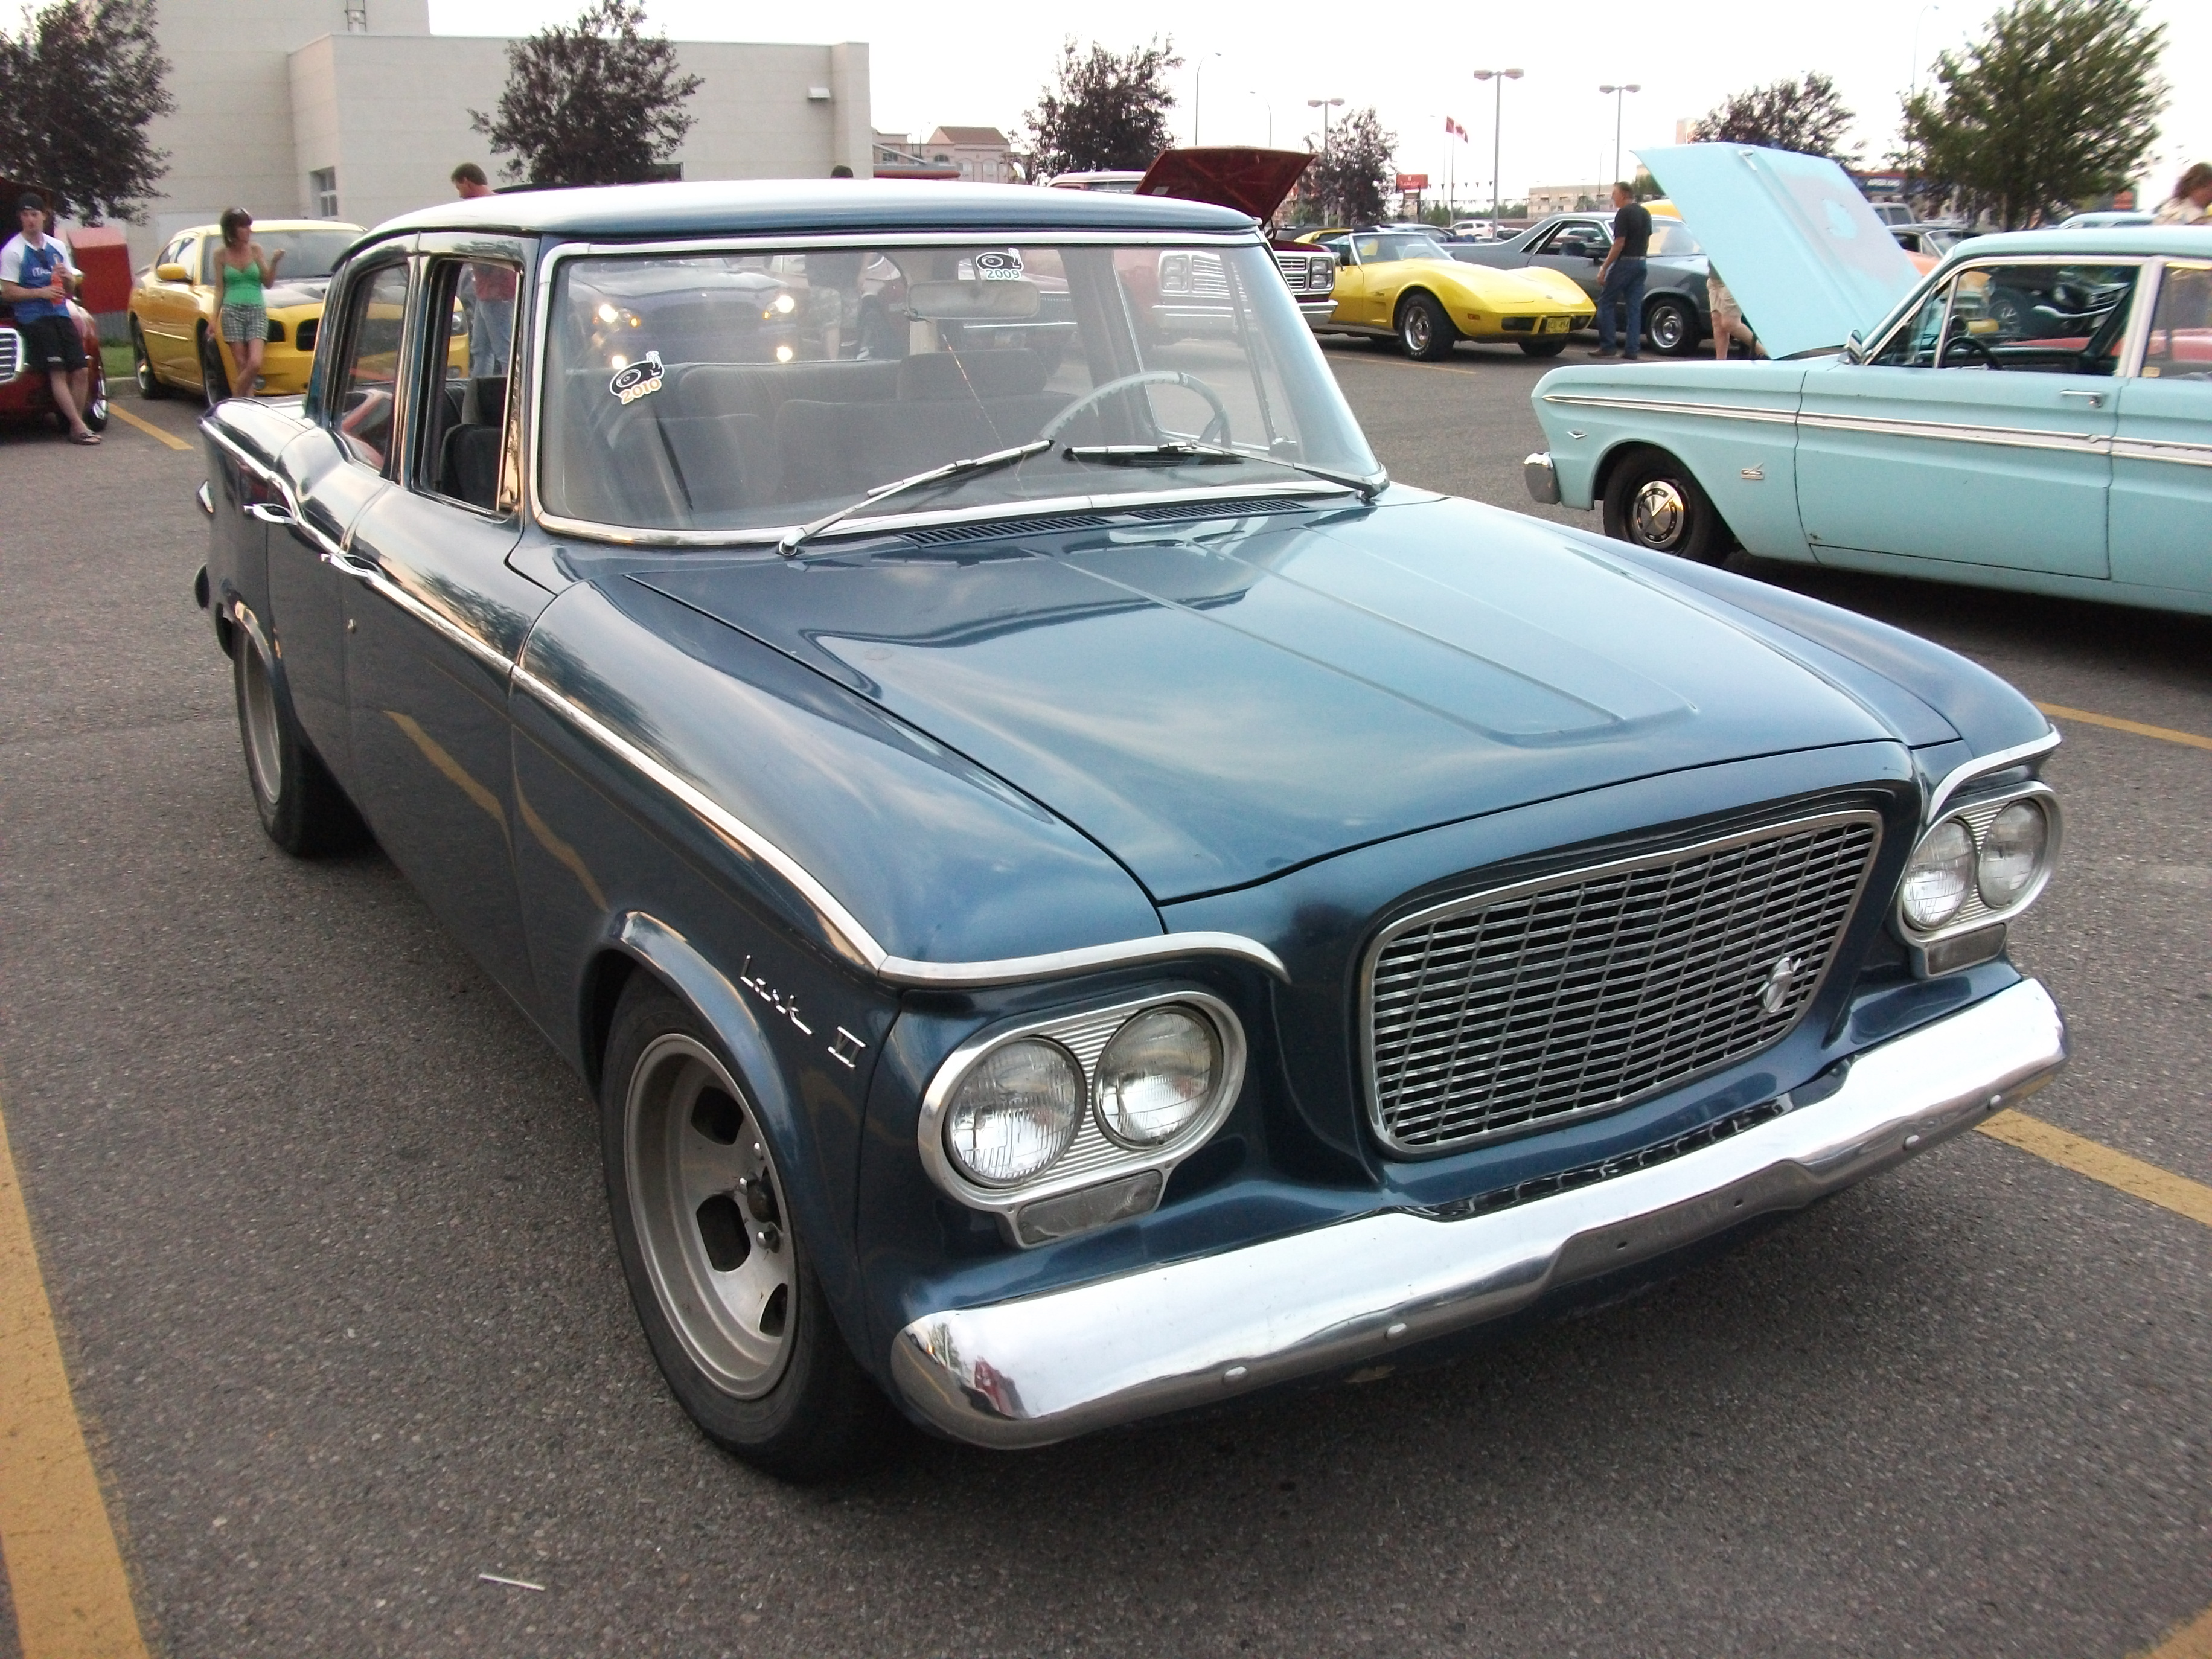 1961 Studebaker Lark VI | Flickr - Photo Sharing!